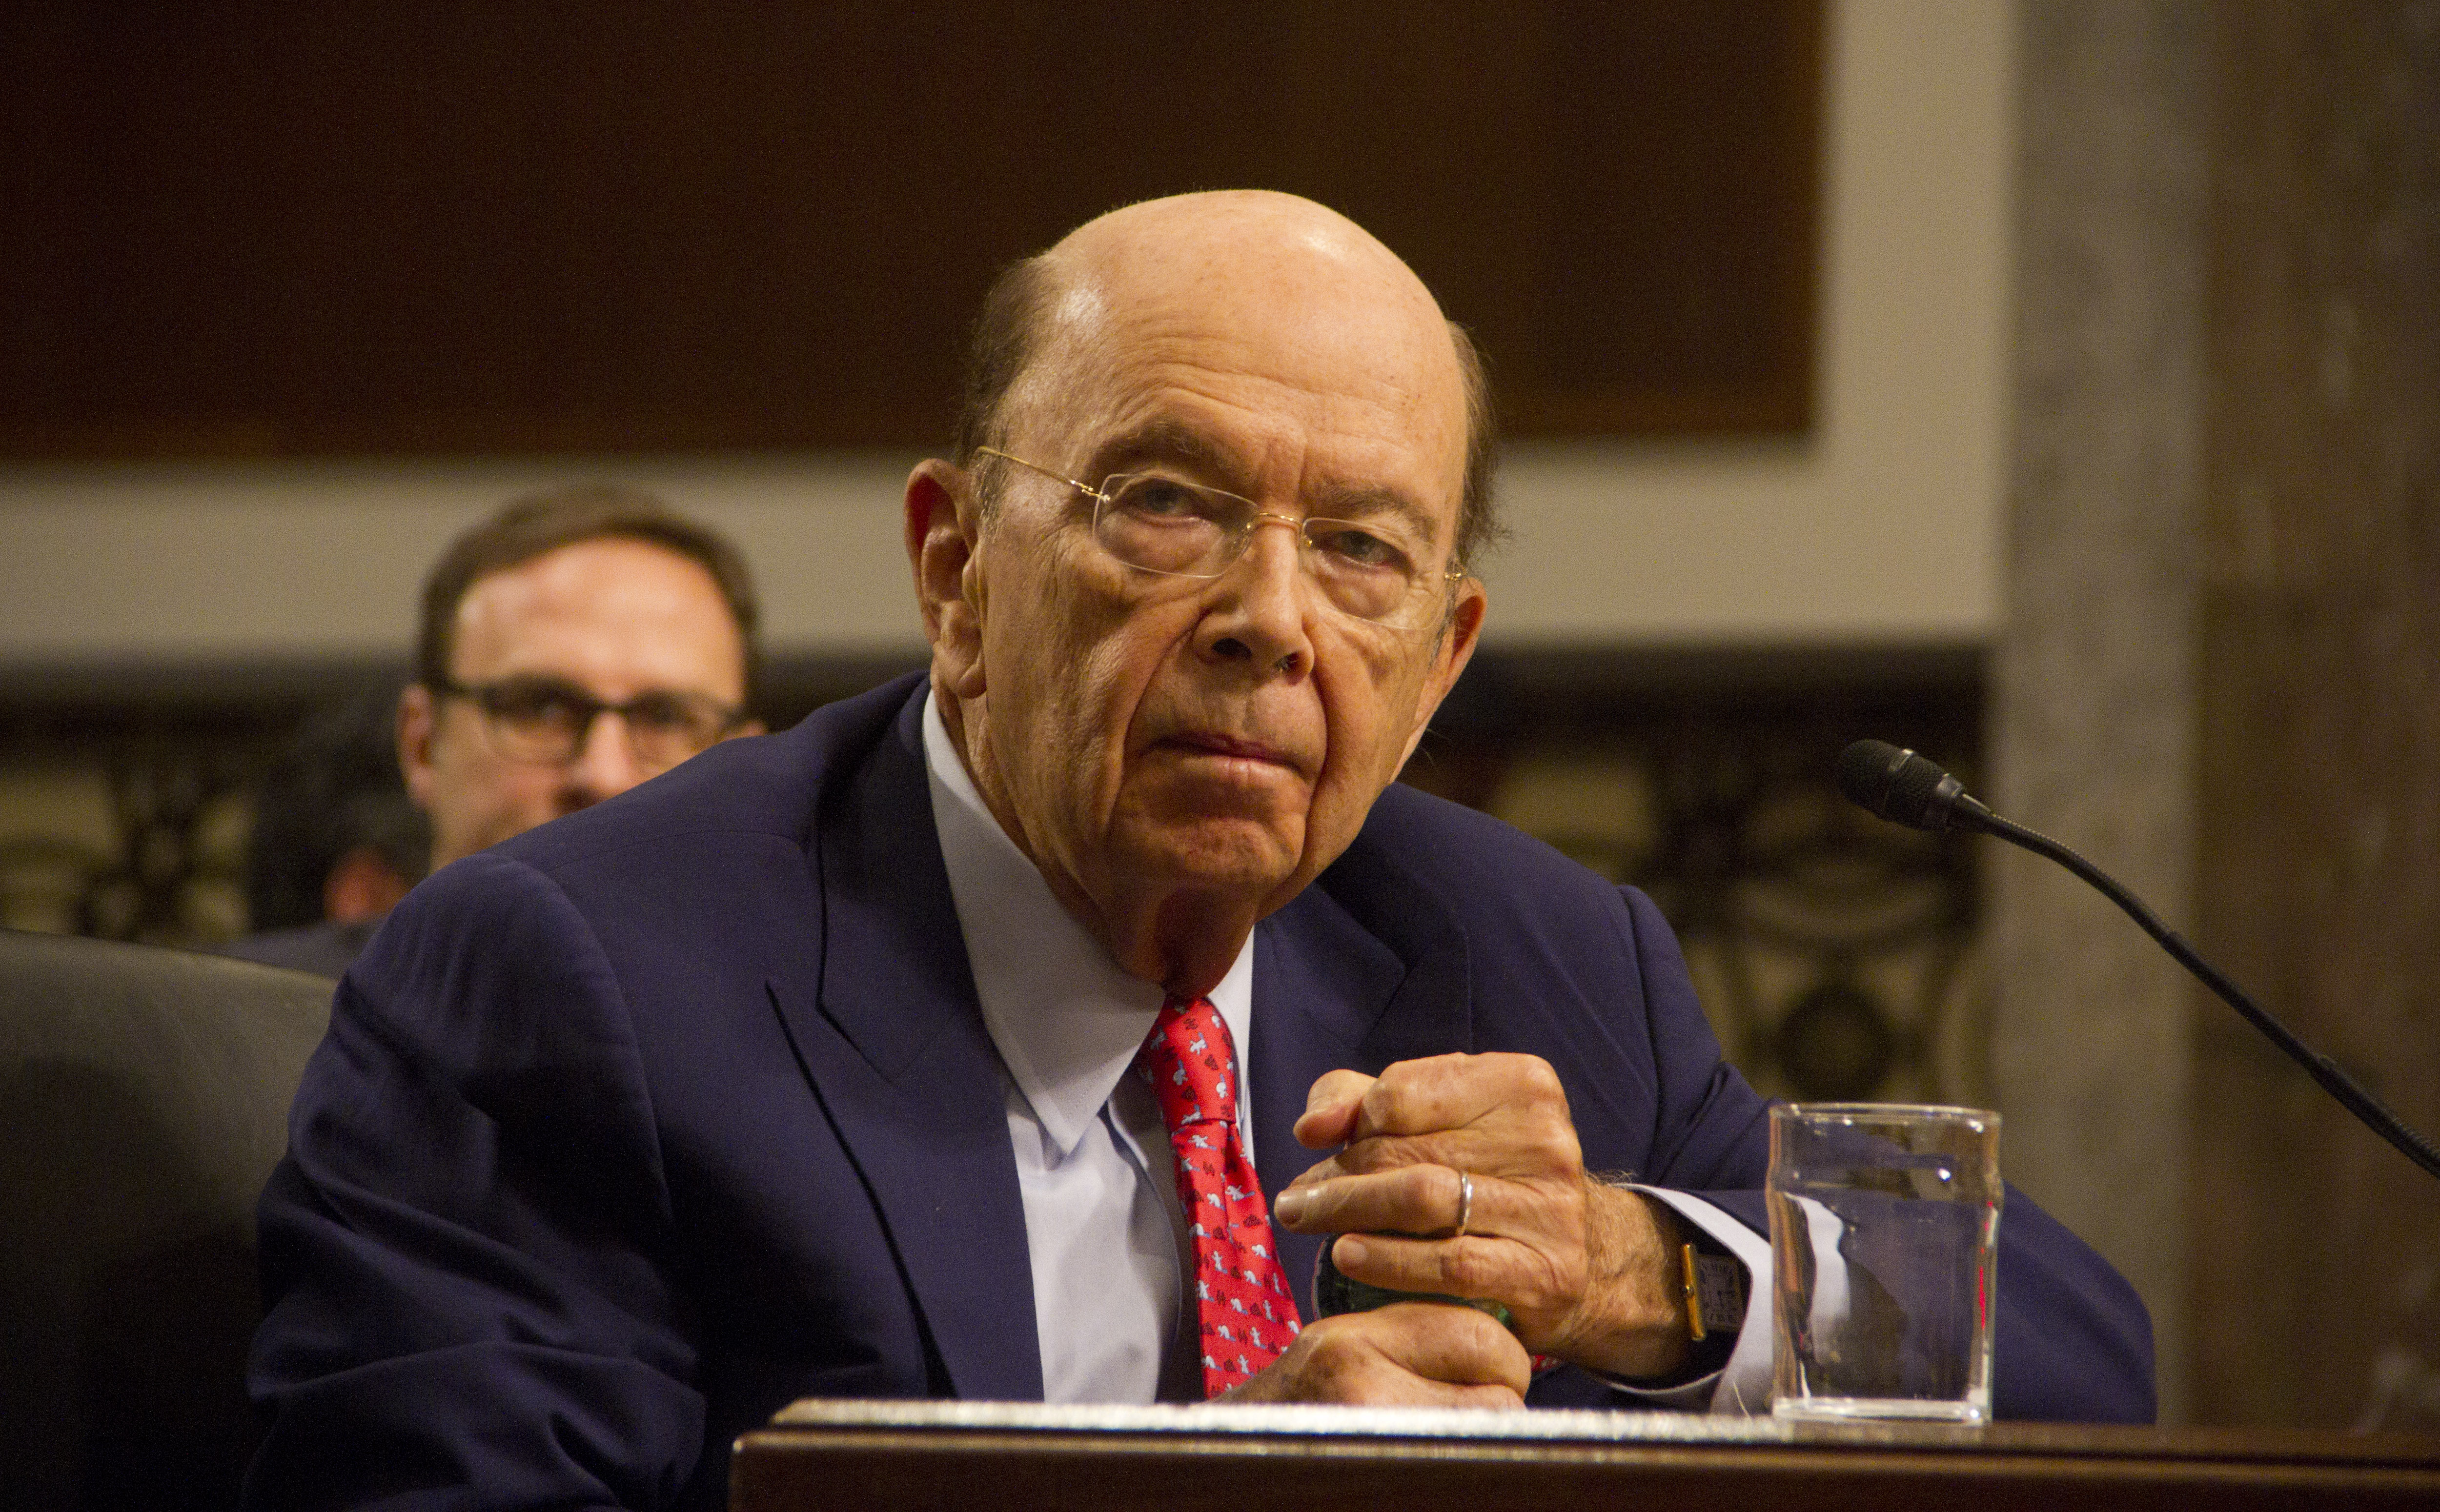 Wilbur Ross, picked by President-elect Donald Trump to serve